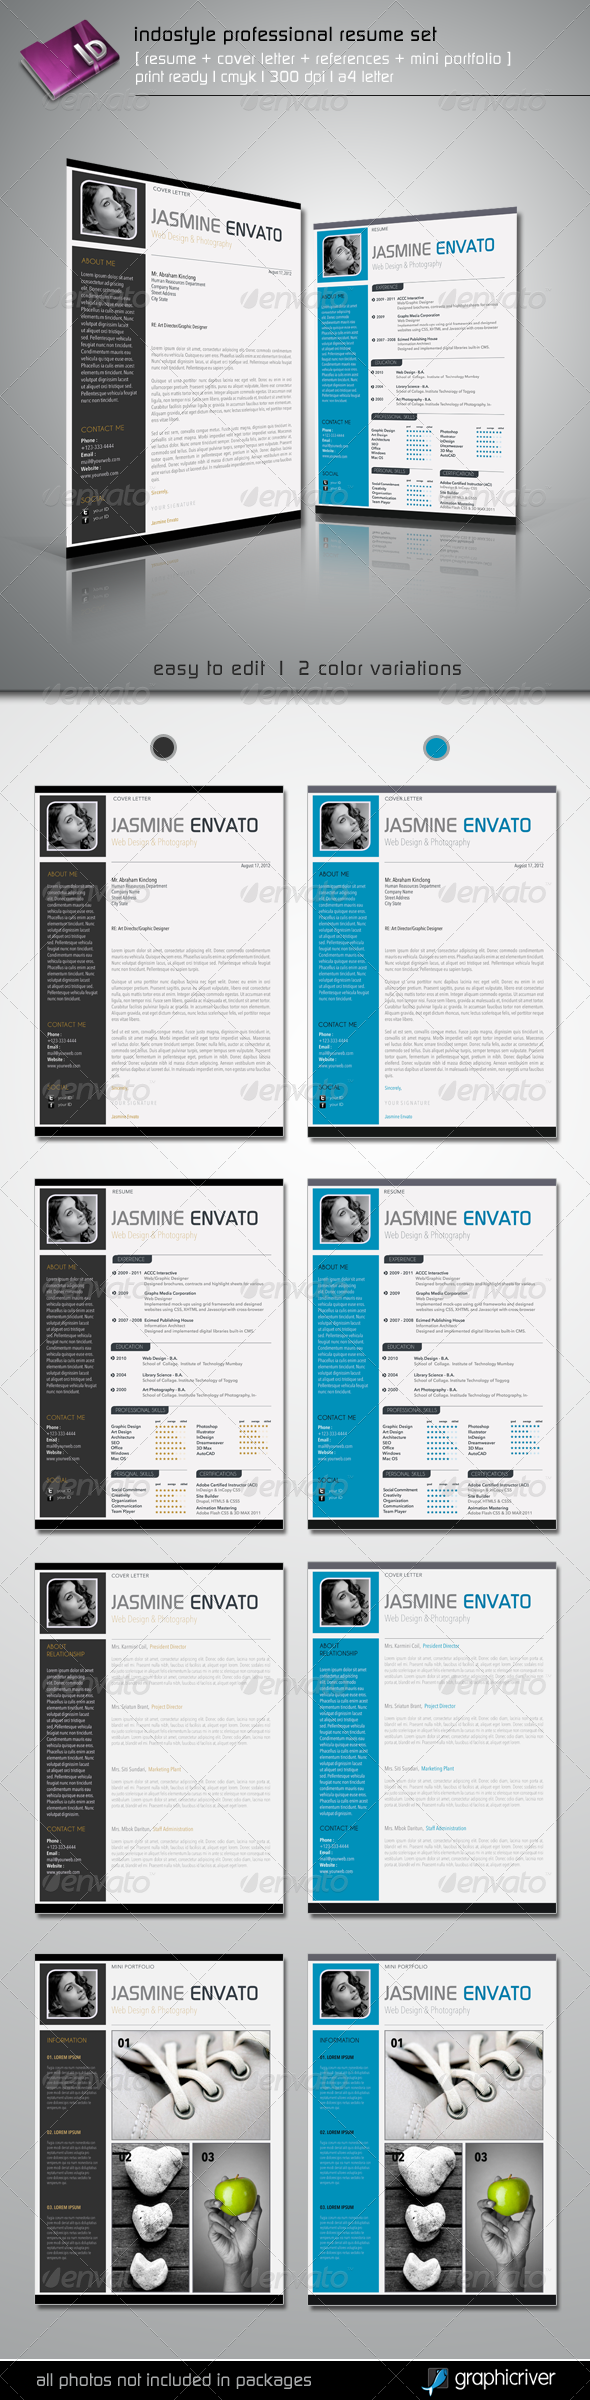 Indostyle Professional Resume Set